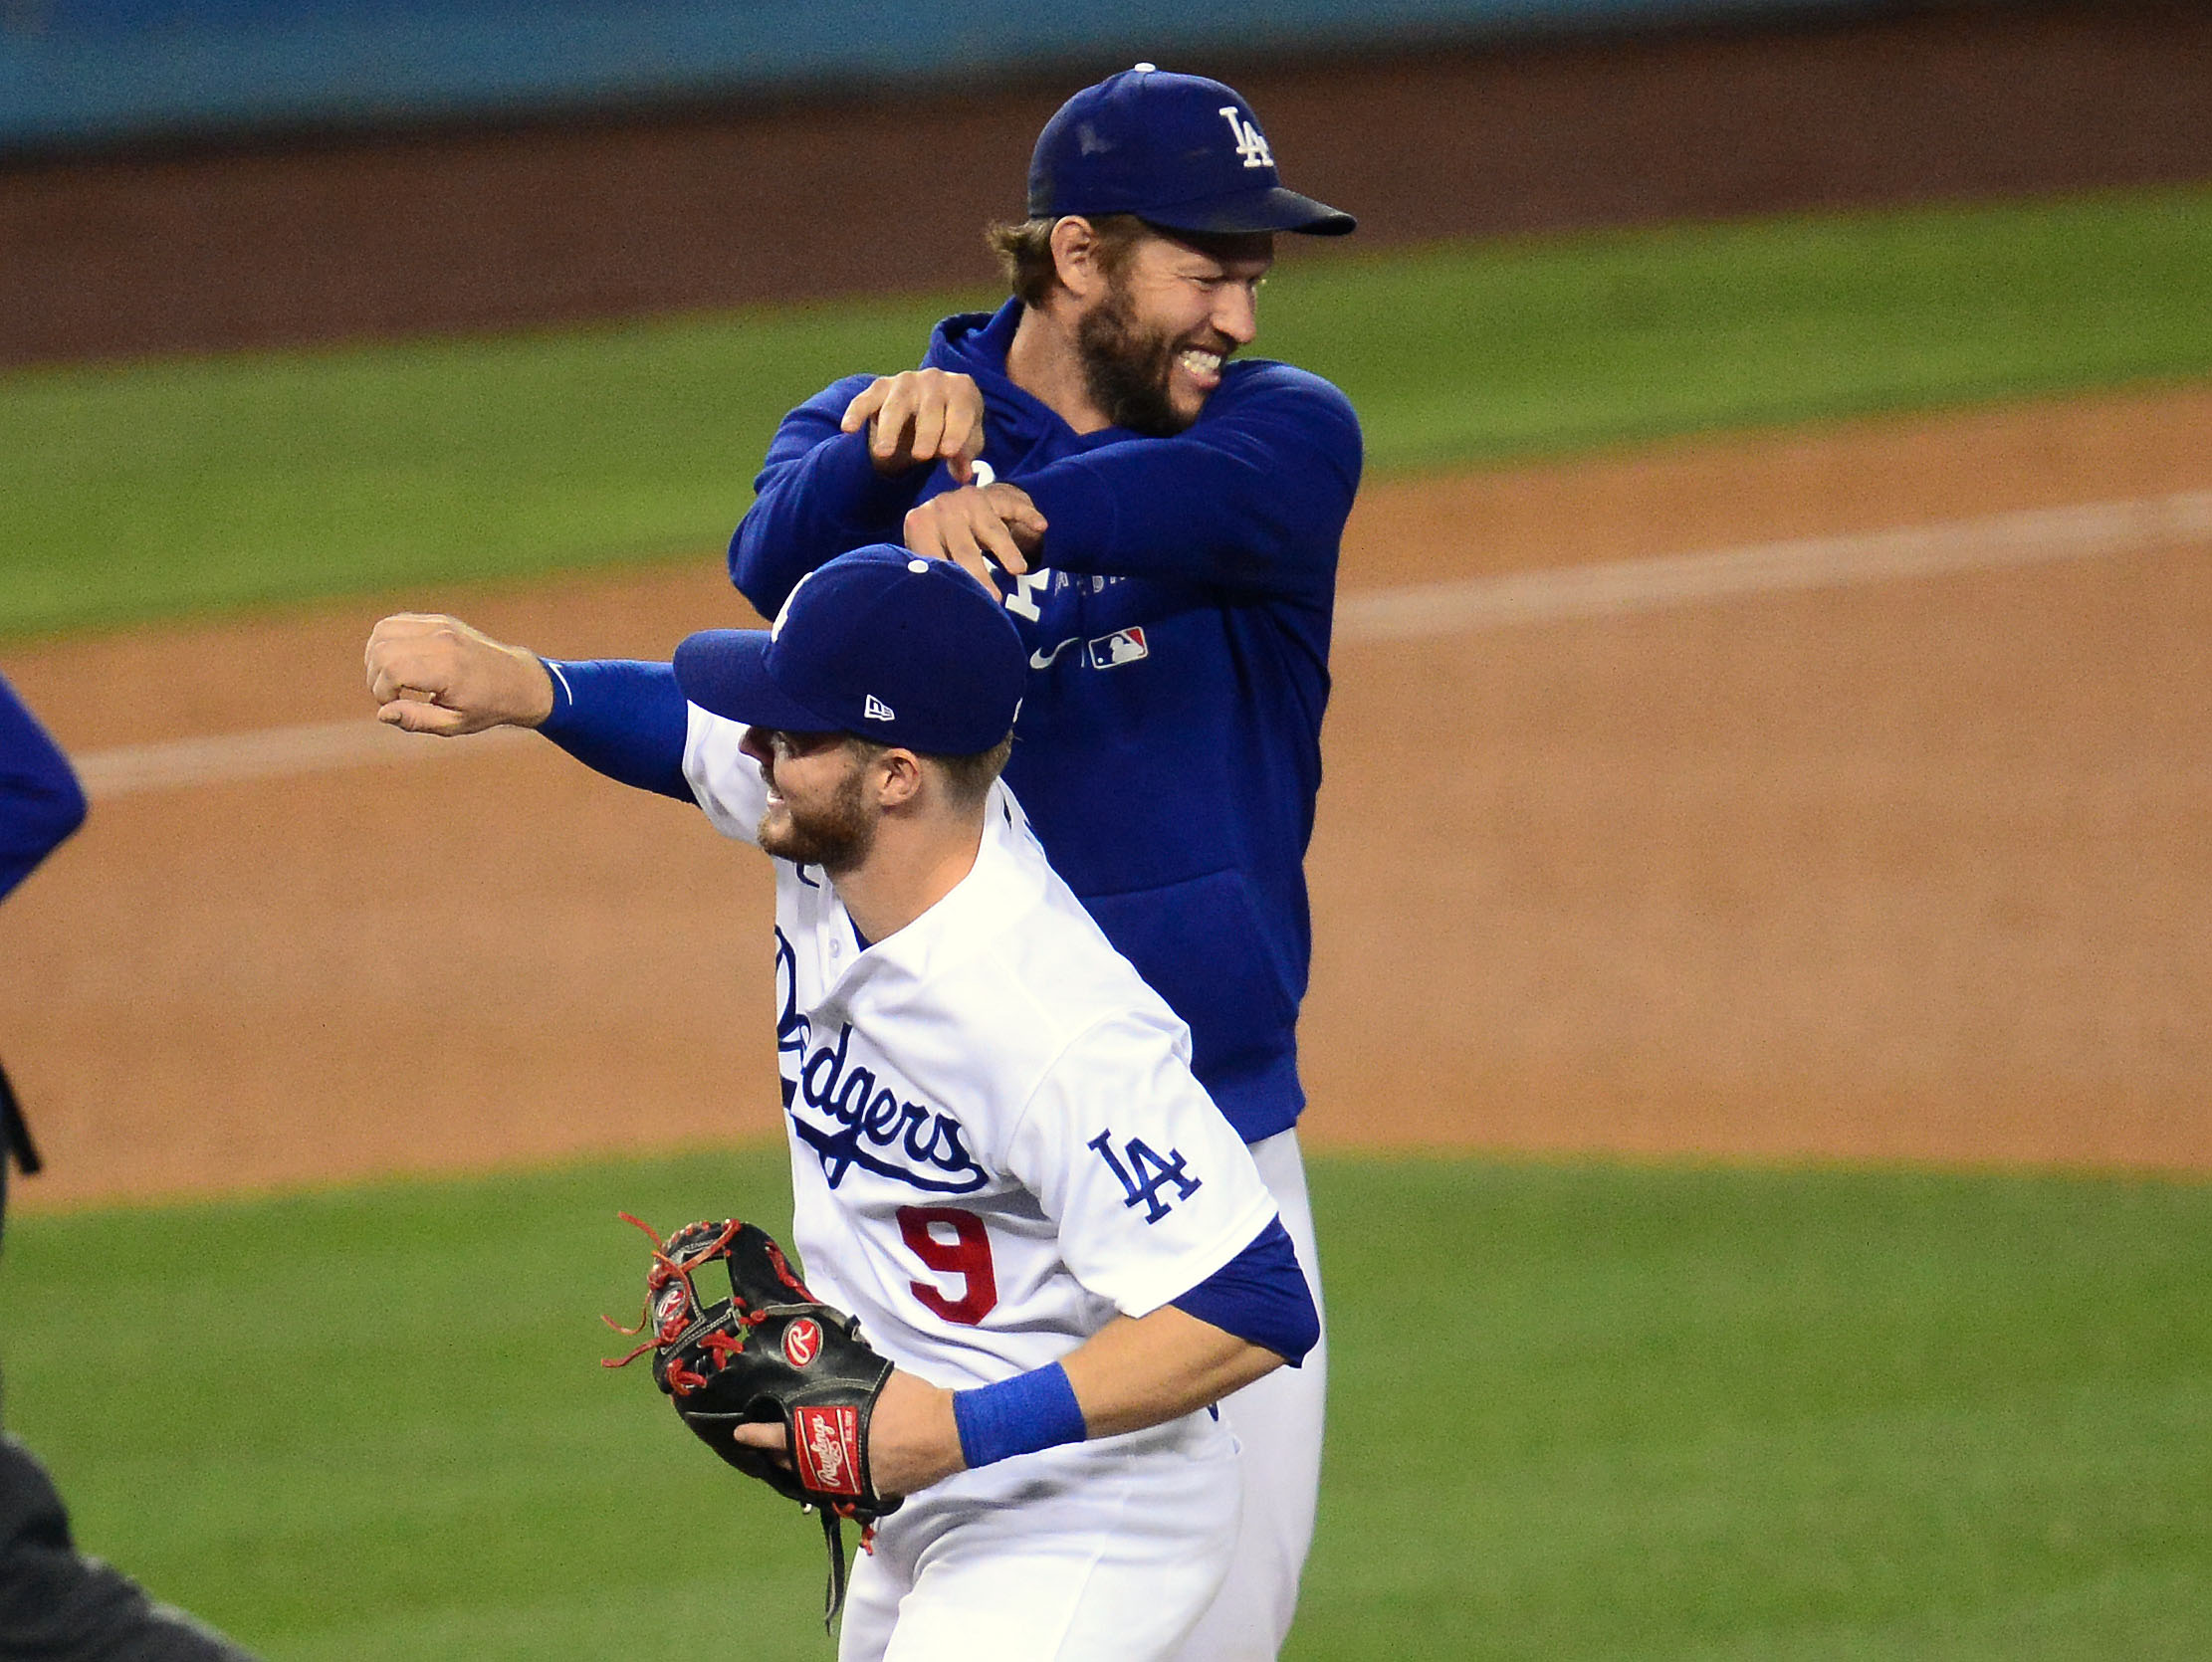 May 11, 2021; Los Angeles, California, USA; Los Angeles Dodgers starting pitcher Clayton Kershaw (22) celebrates with second baseman Gavin Lux (9) the 6-4 victory against the Seattle Mariners at Dodger Stadium. Mandatory Credit: Gary A. Vasquez-USA TODAY Sports